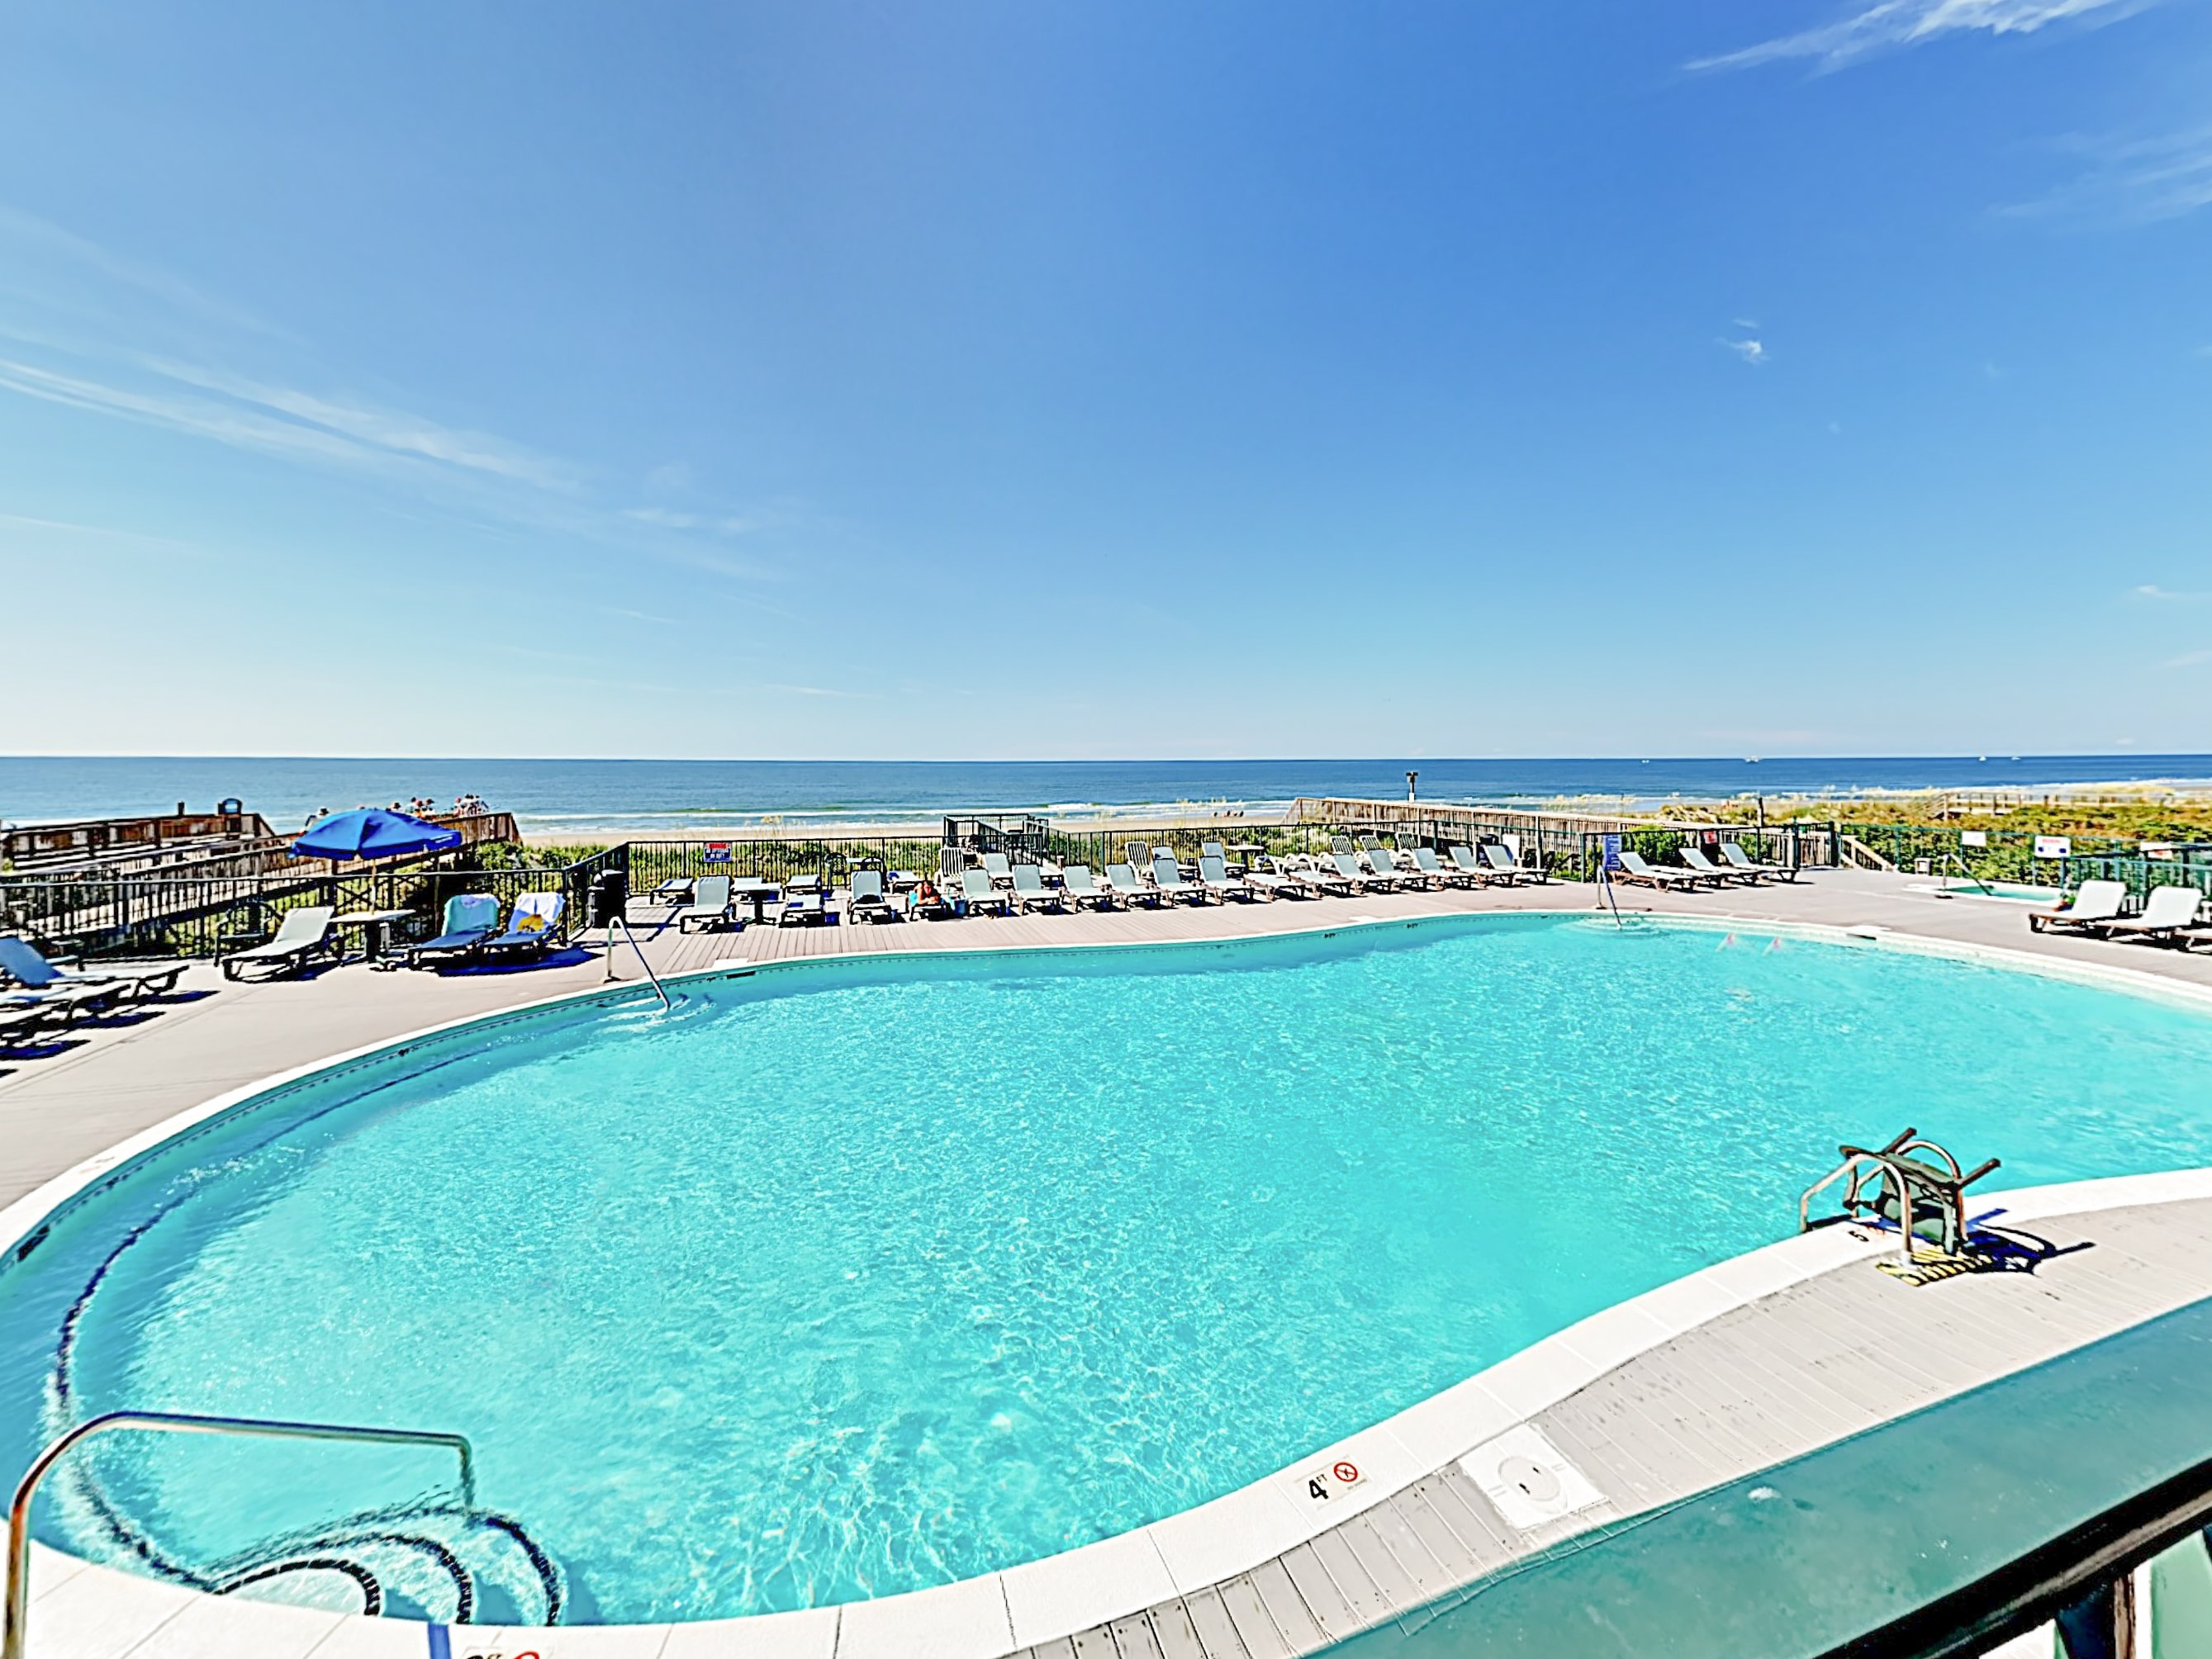 Swim in an expansive resort-style oceanfront pool.